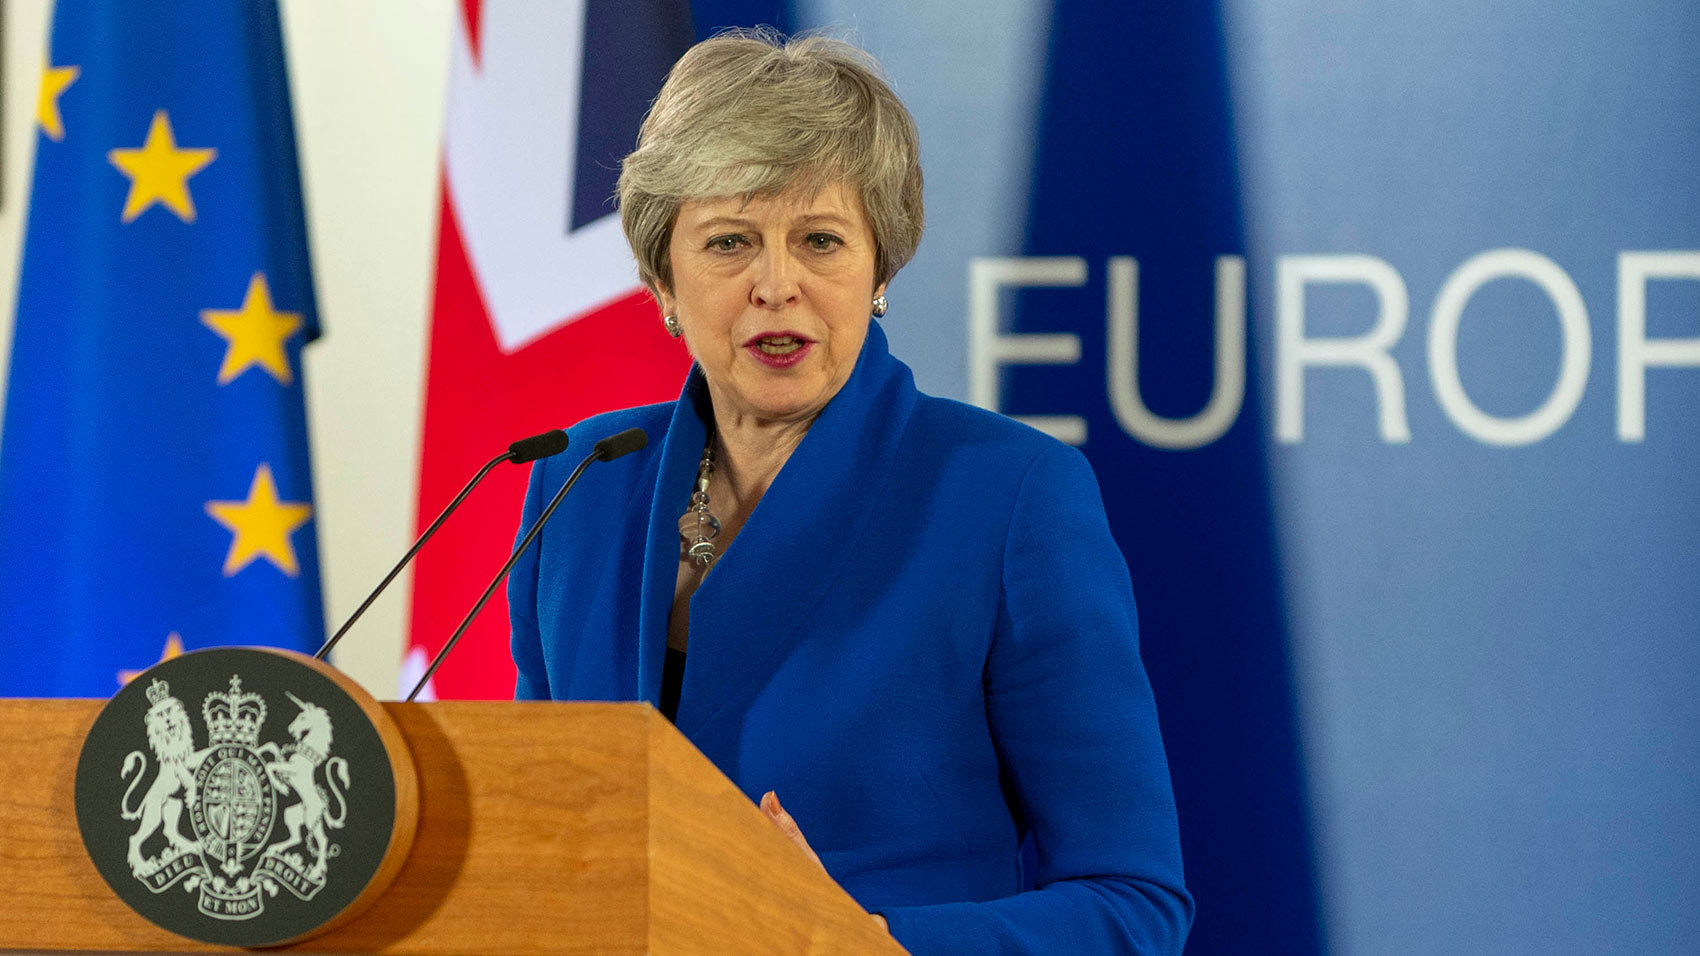 British prime minister, Theresa May, last night in Brussels. Photo by: European Union.